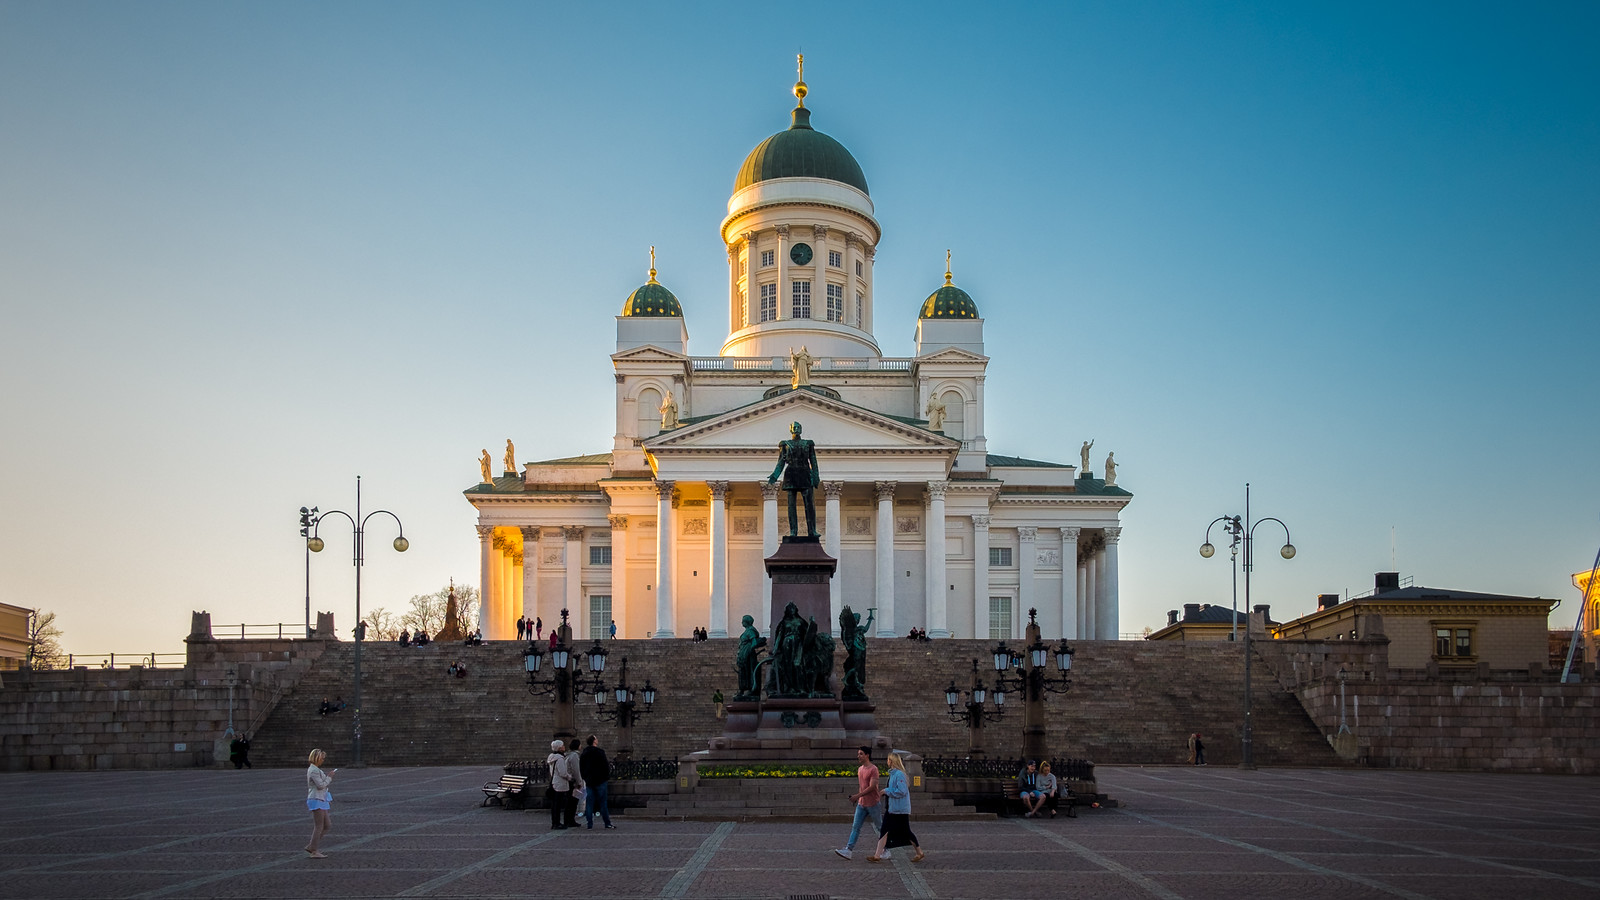 Exciting And Dynamic Destination – City Of Helsinki